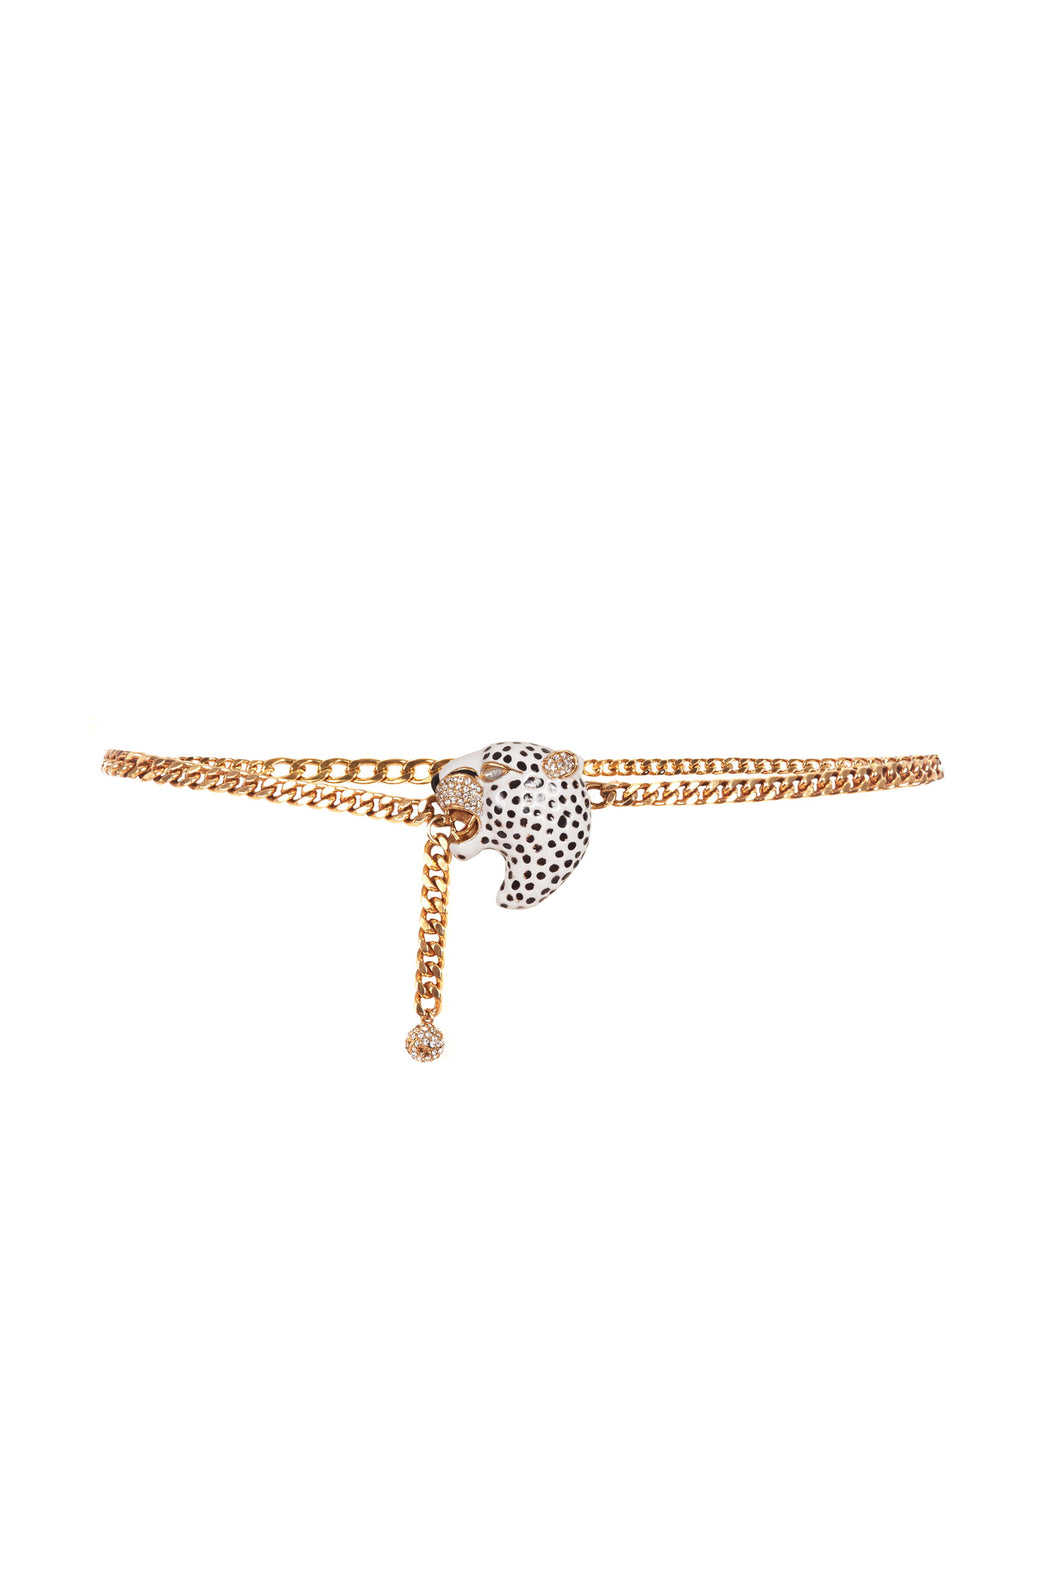 X Ciner Le Jaguar Embellished Gold-Tone Chain Belt